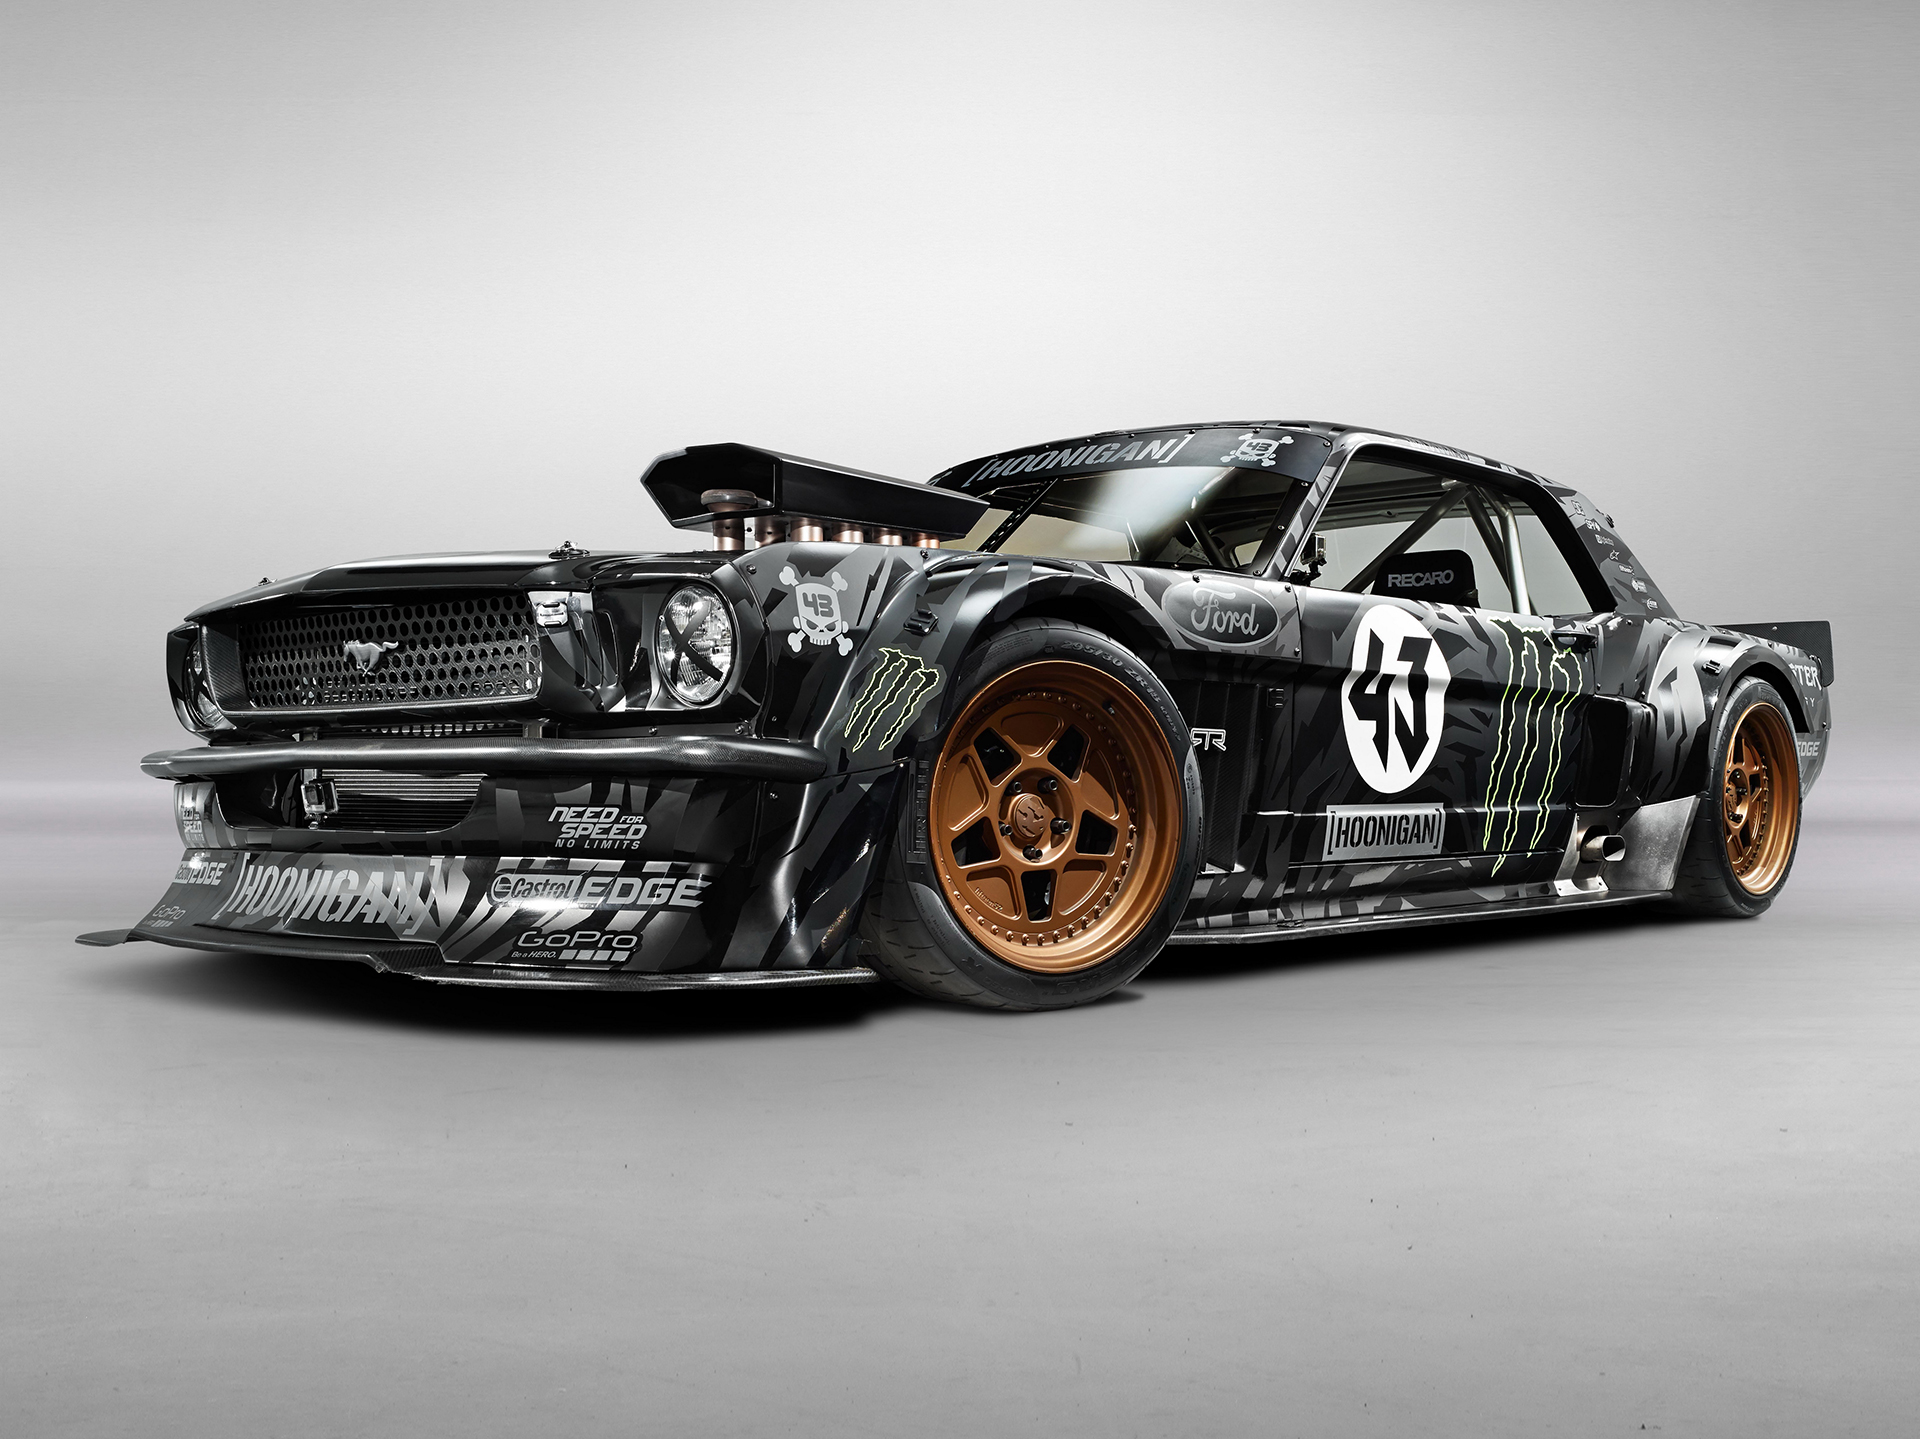 1965 Ford Mustang Hoonicorn RTR - 2015 - profil avant / front side-face